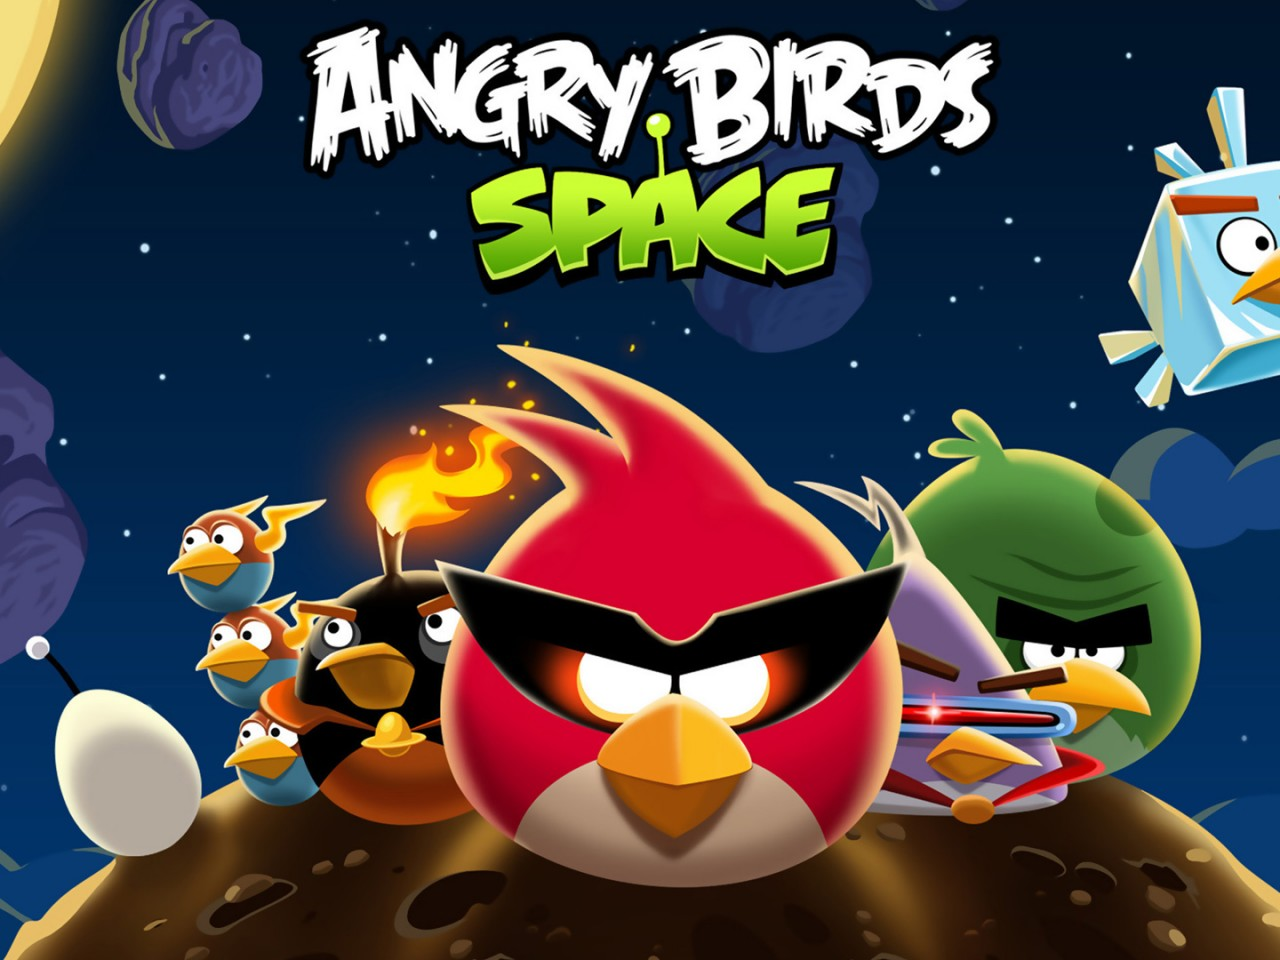 Angry Birds Space HD Wallpaper HD Wallpapers